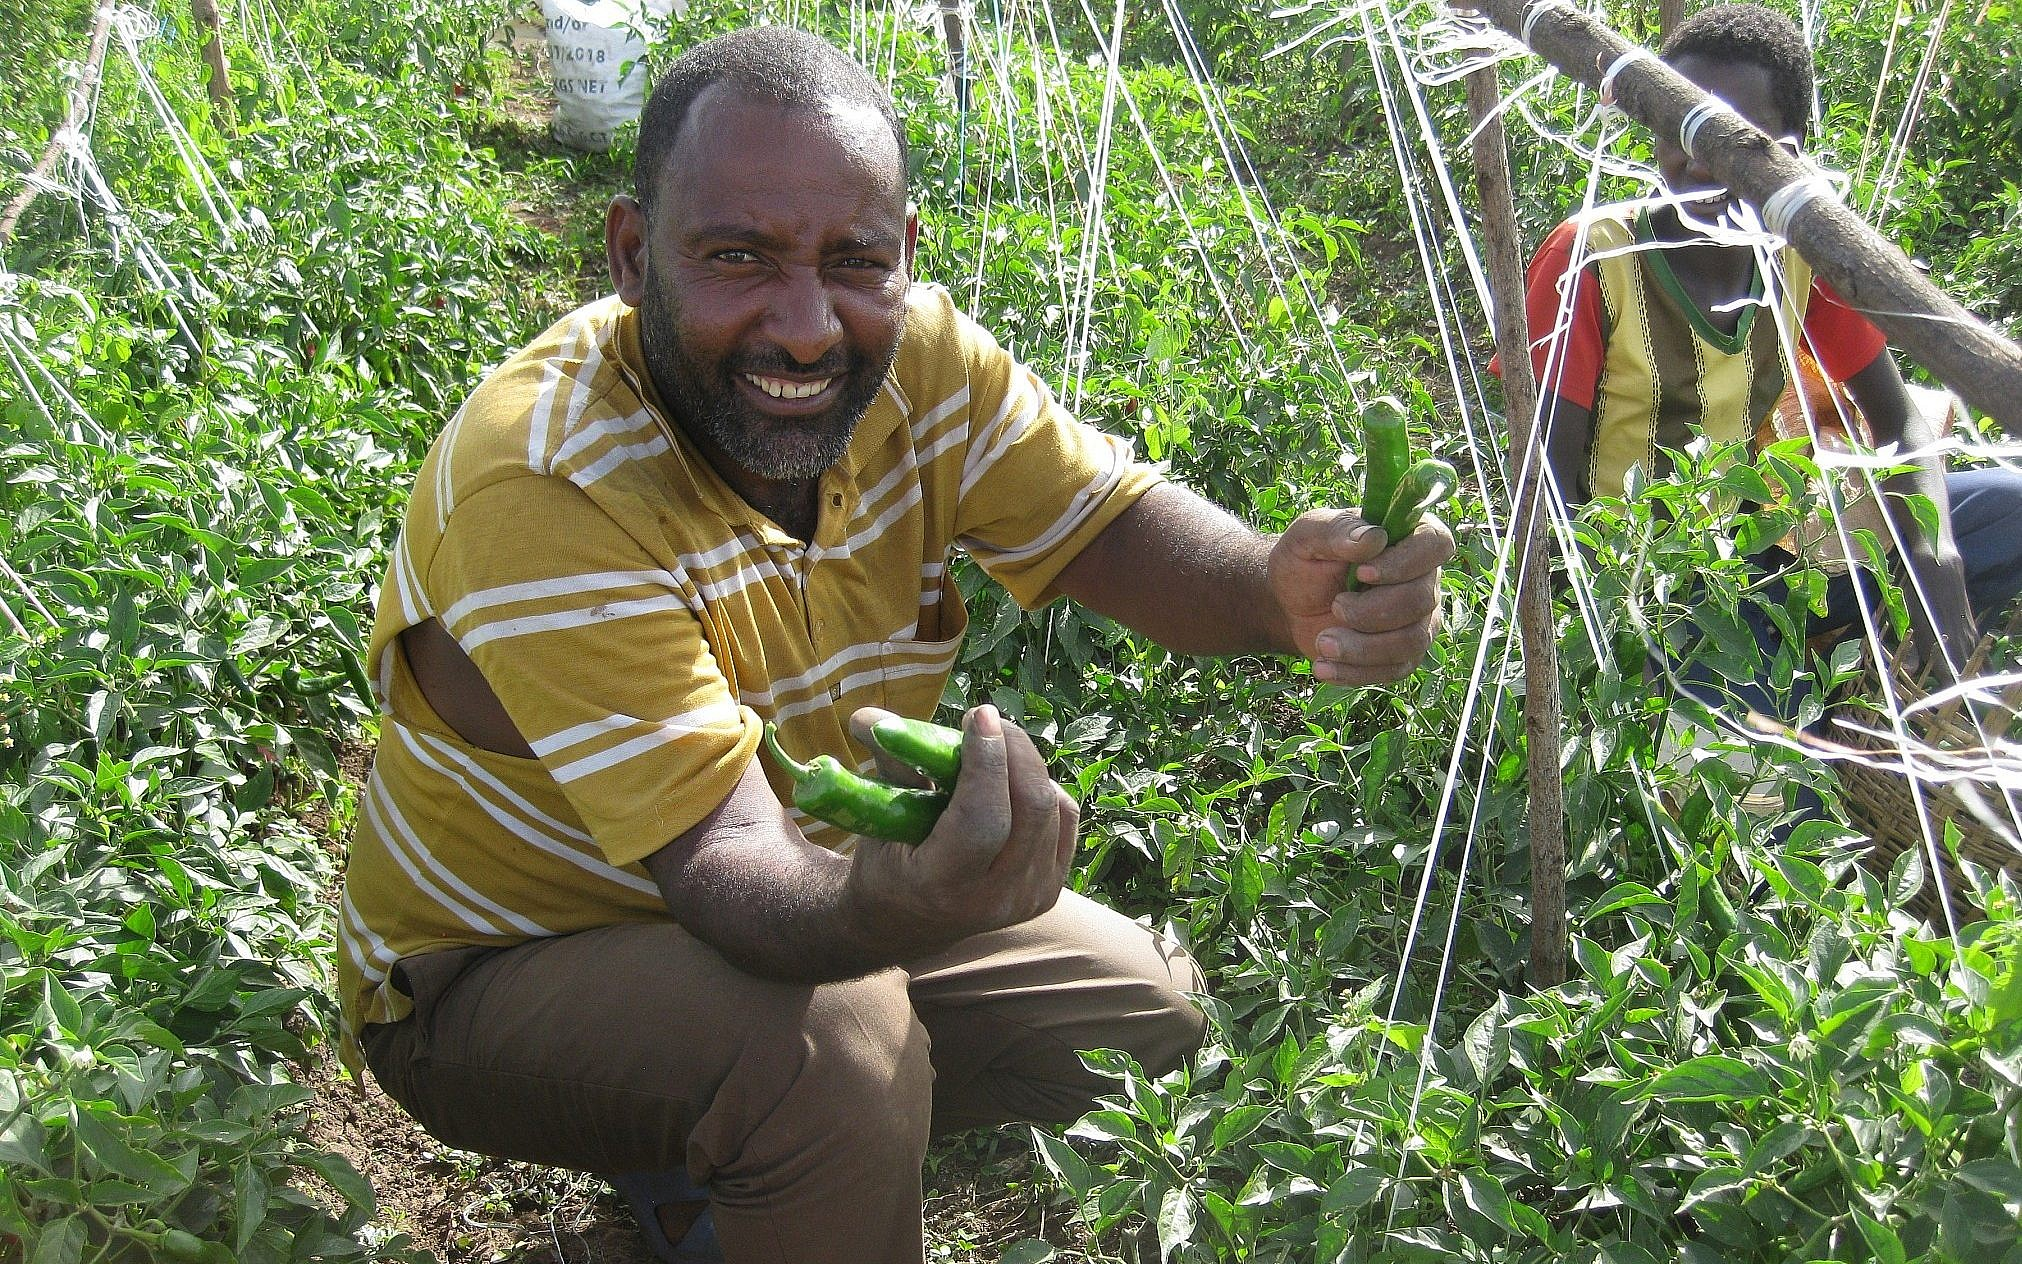 New fund utilizes Israeli tech to help small farmers in